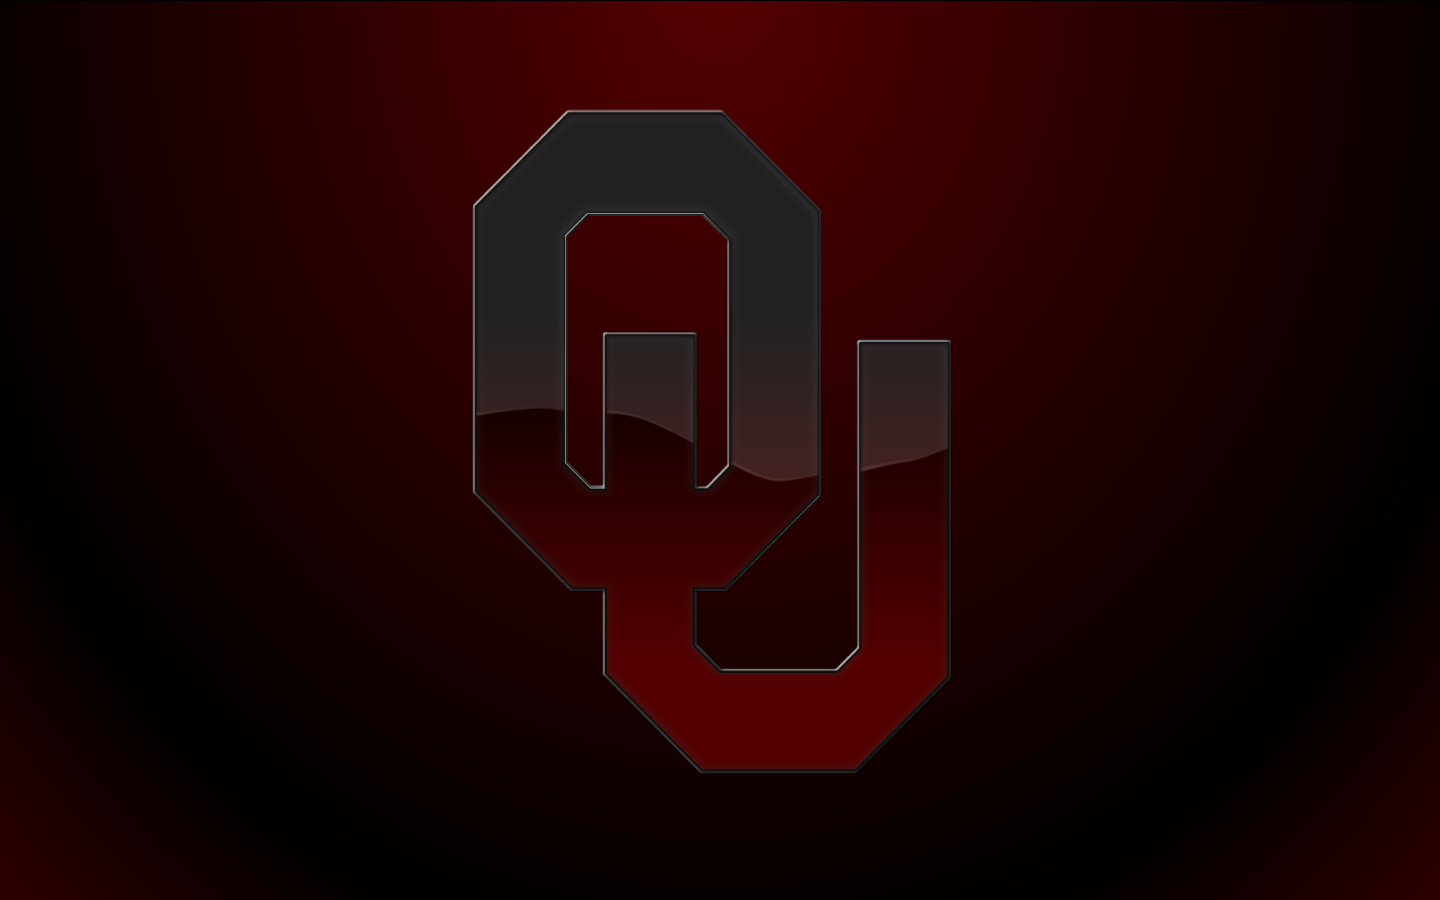 Oklahoma Sooners Chrome Wallpapers Browser Themes and 1440x900